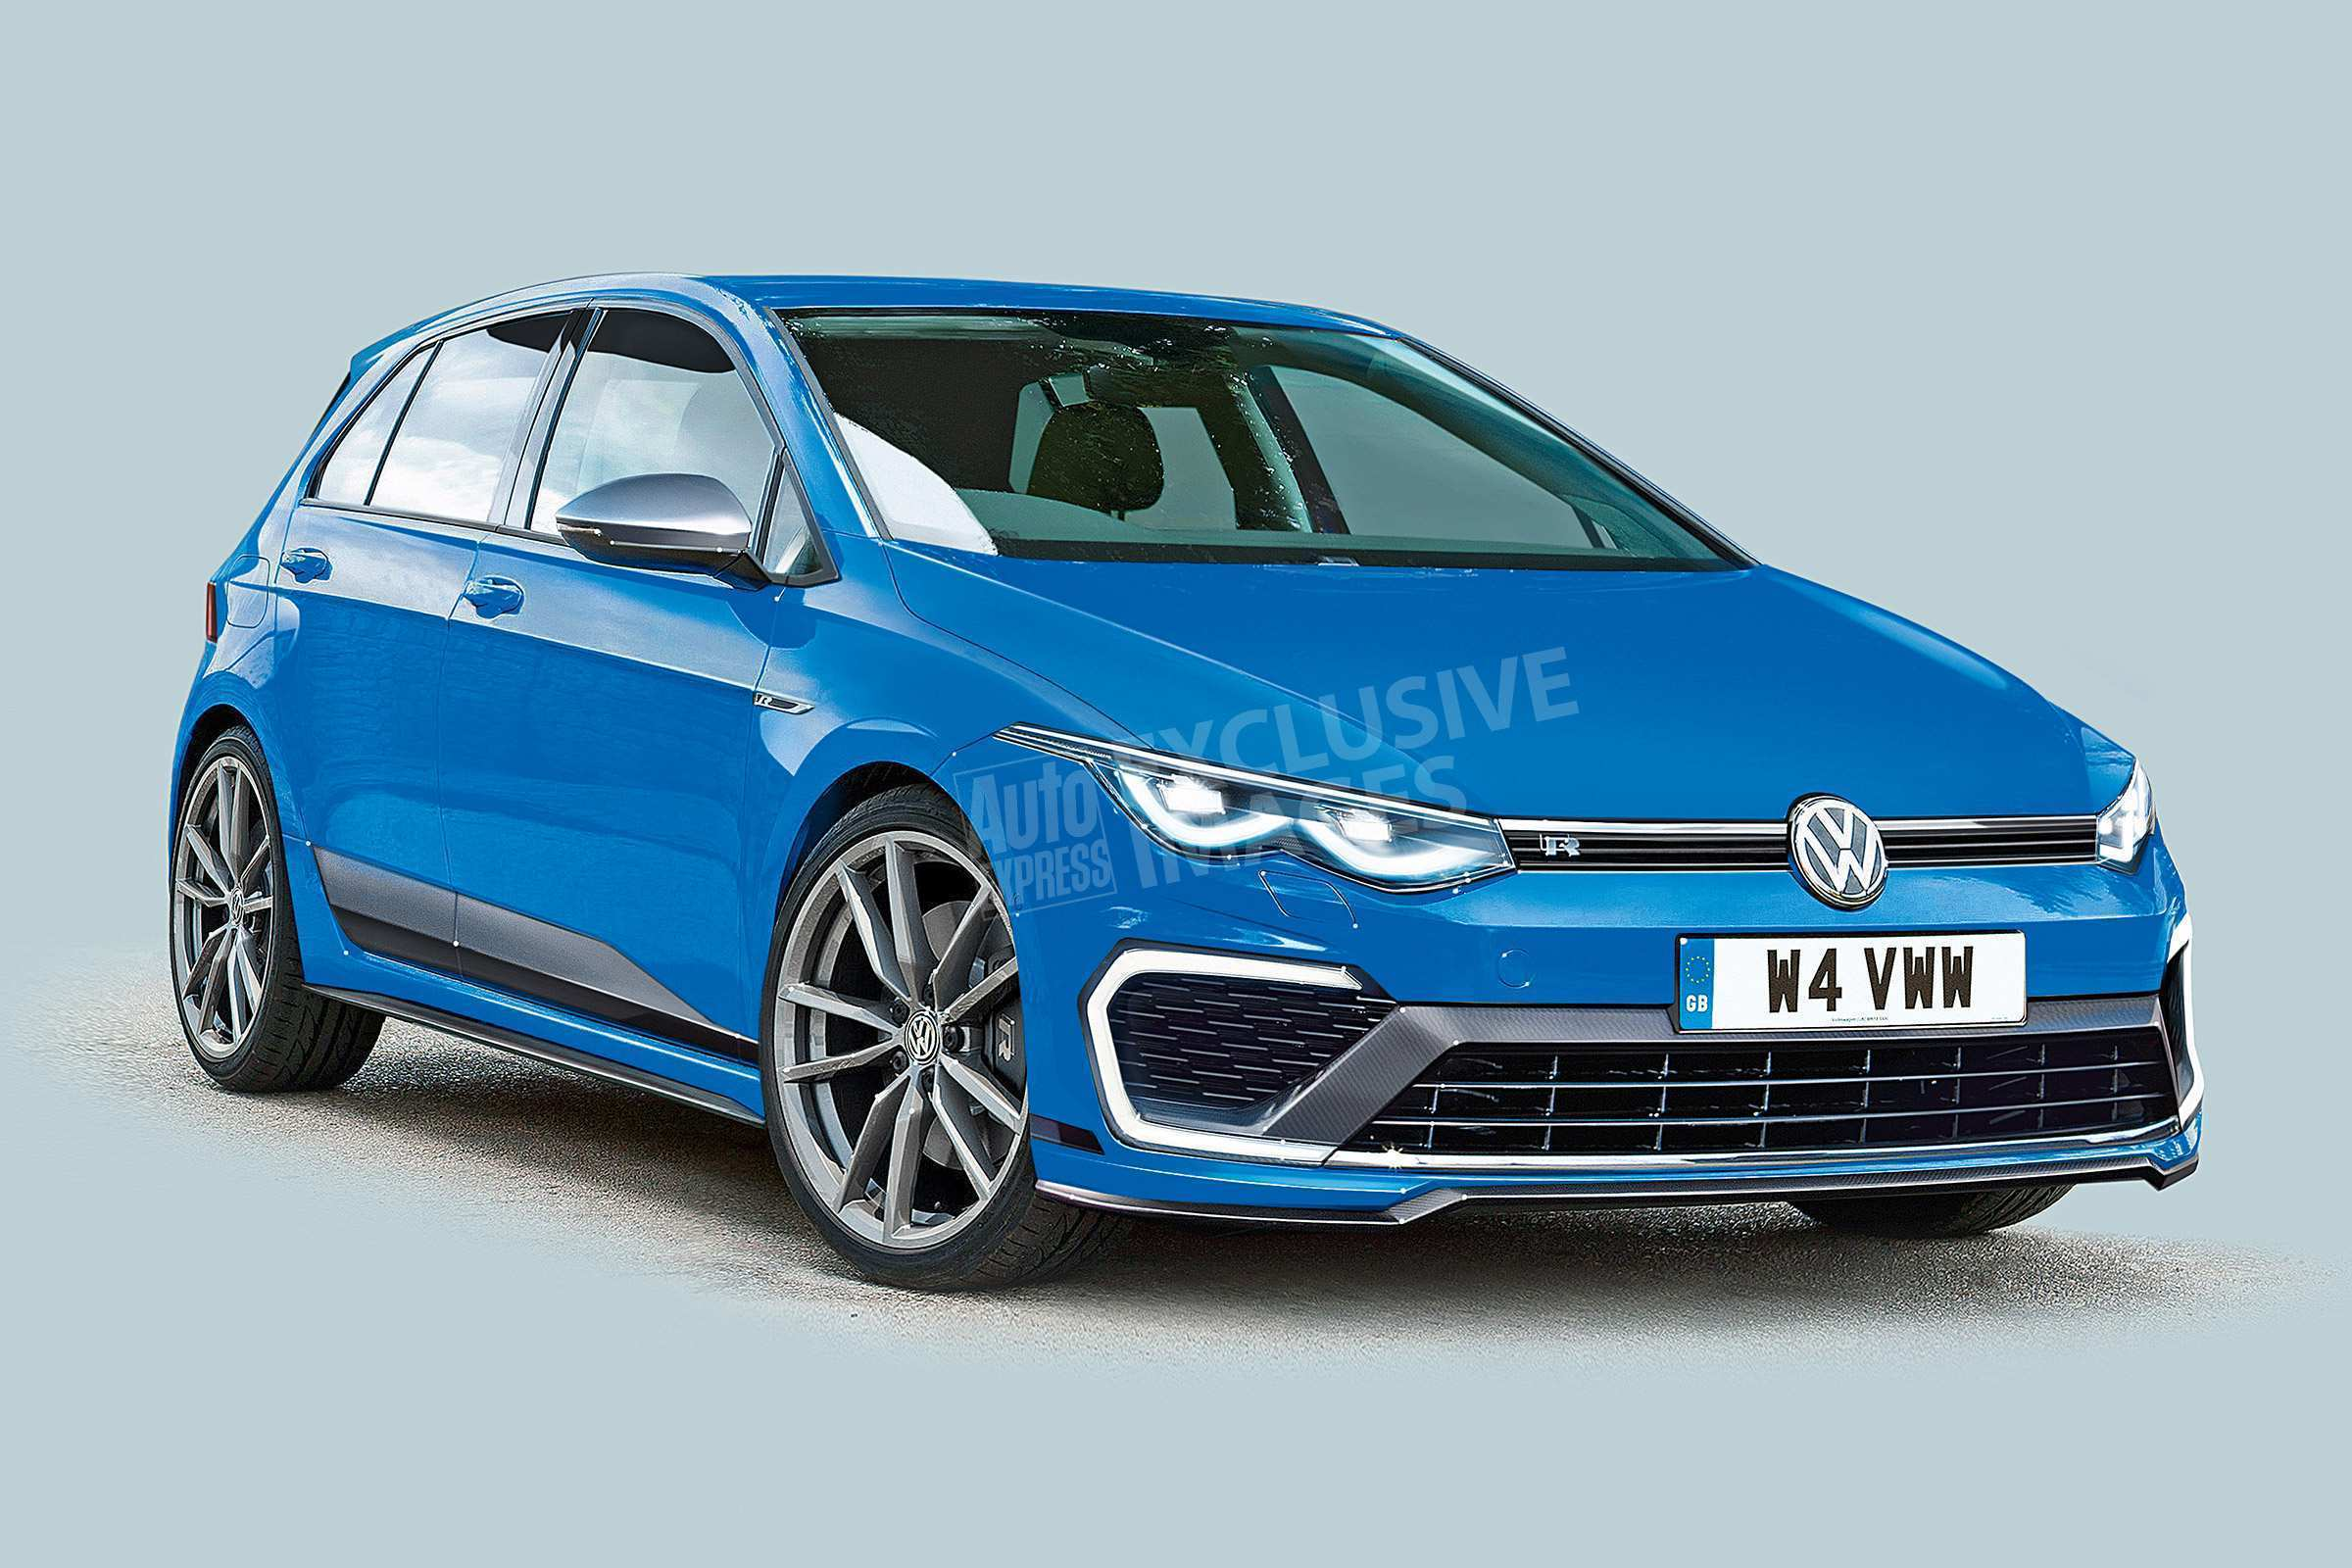 77 The VW Golf Gti 2020 Style with VW Golf Gti 2020